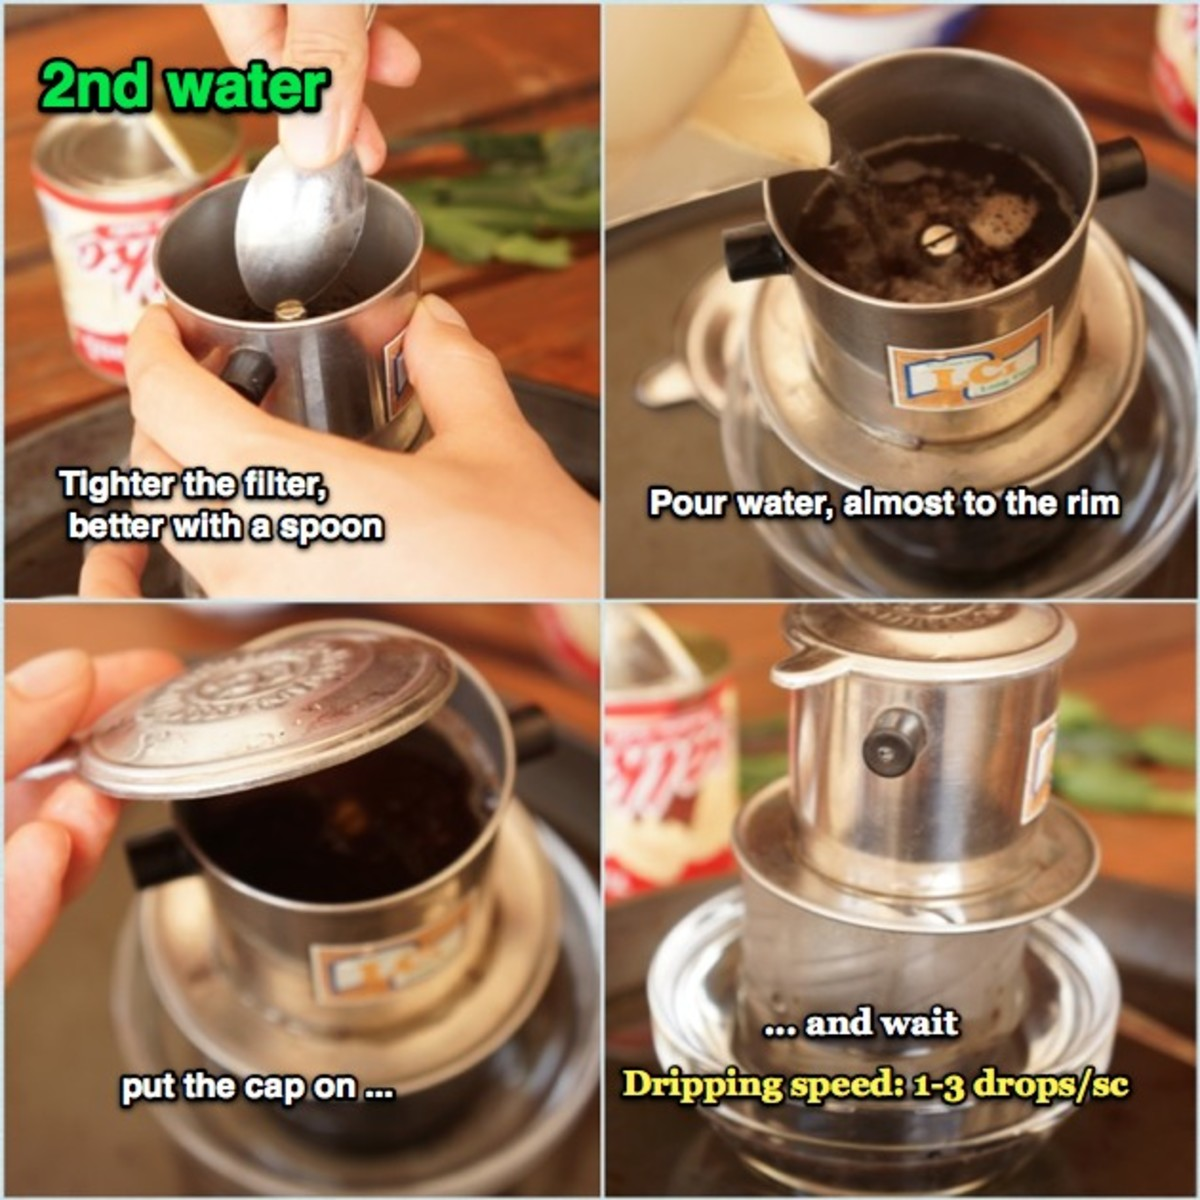 When the first dripping done and coffee is warmed up and raises in volume, fasten the filter further then pour water 3/4 the filter, about 1/2 cup of hot water and put the lid on. If it drips too fast, use the spoon to pin the filter-fastener further